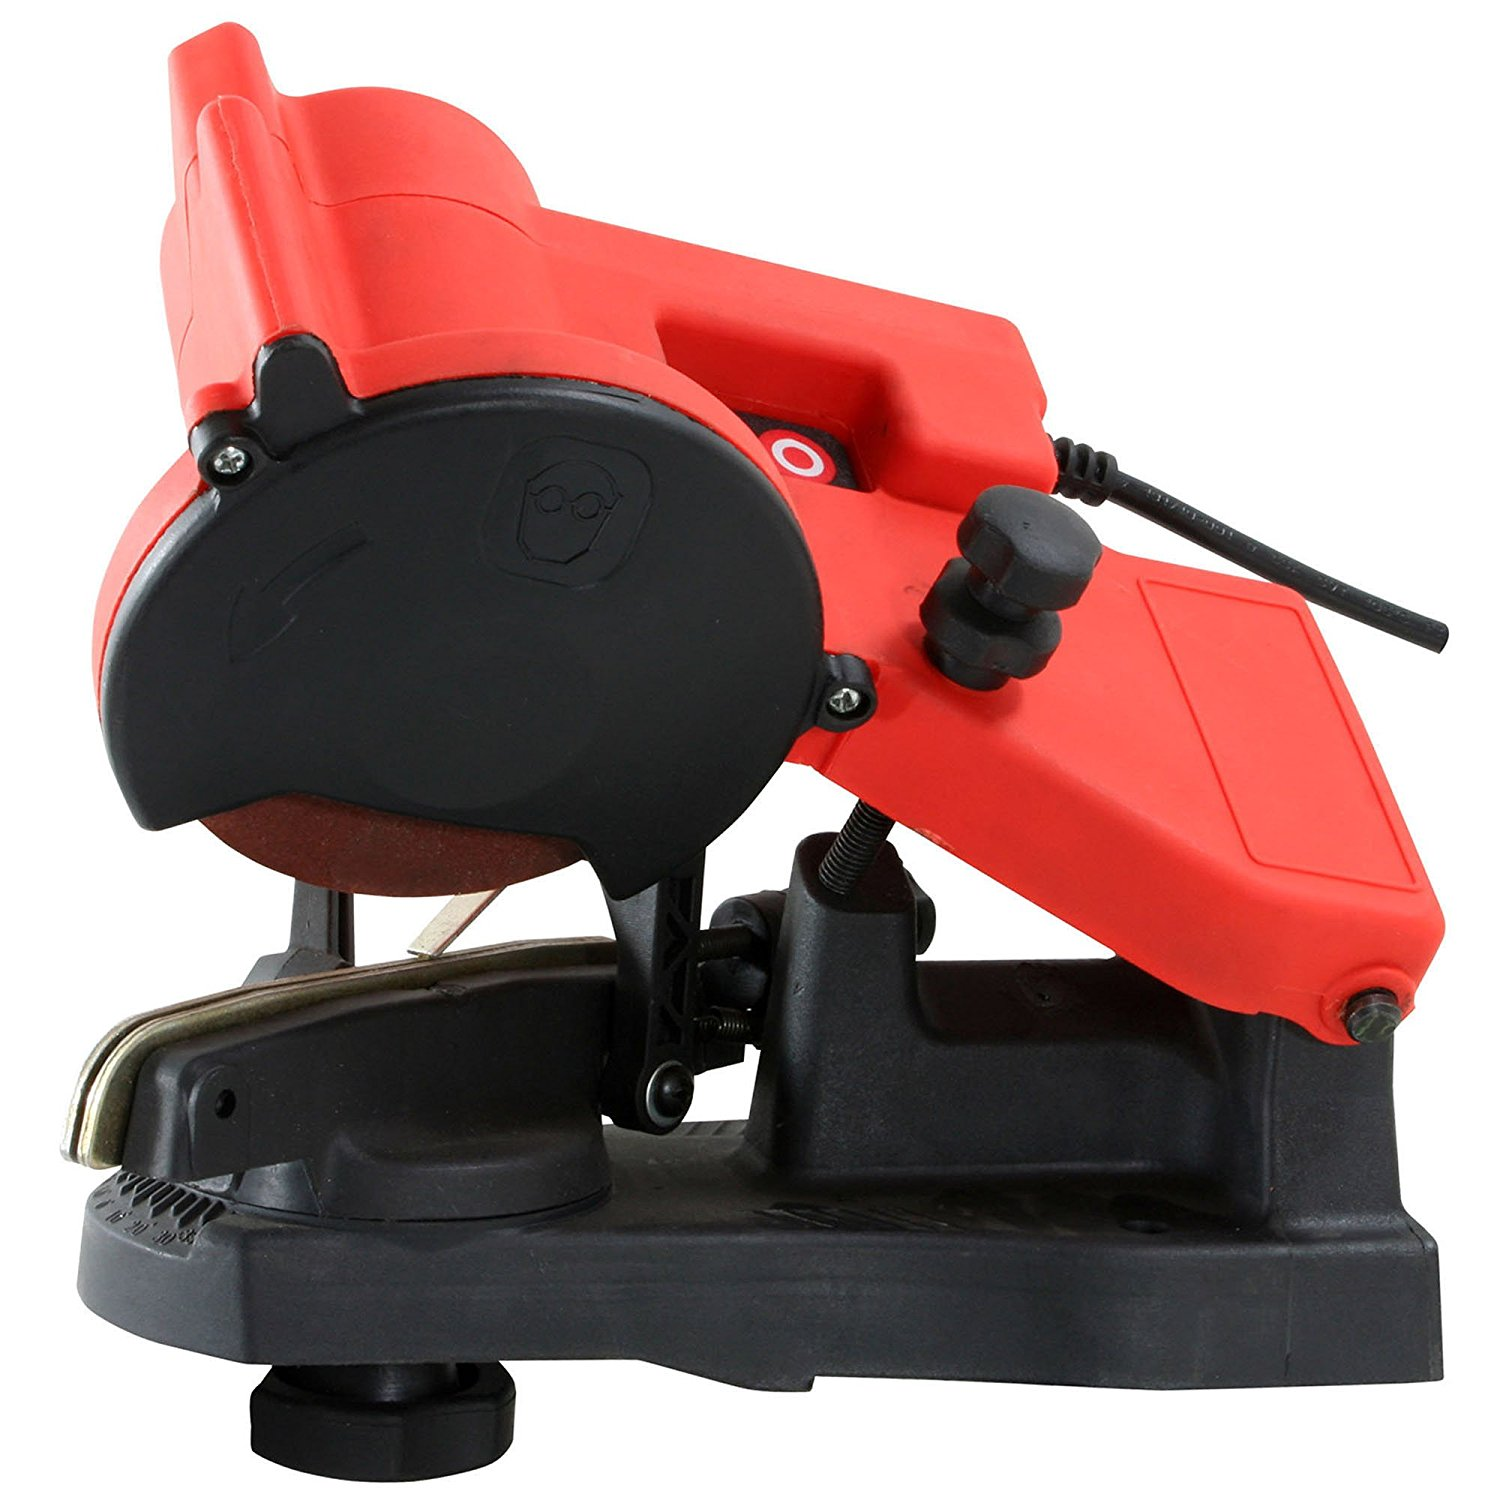 Best Chainsaw Sharpeners For Proper Maintenance